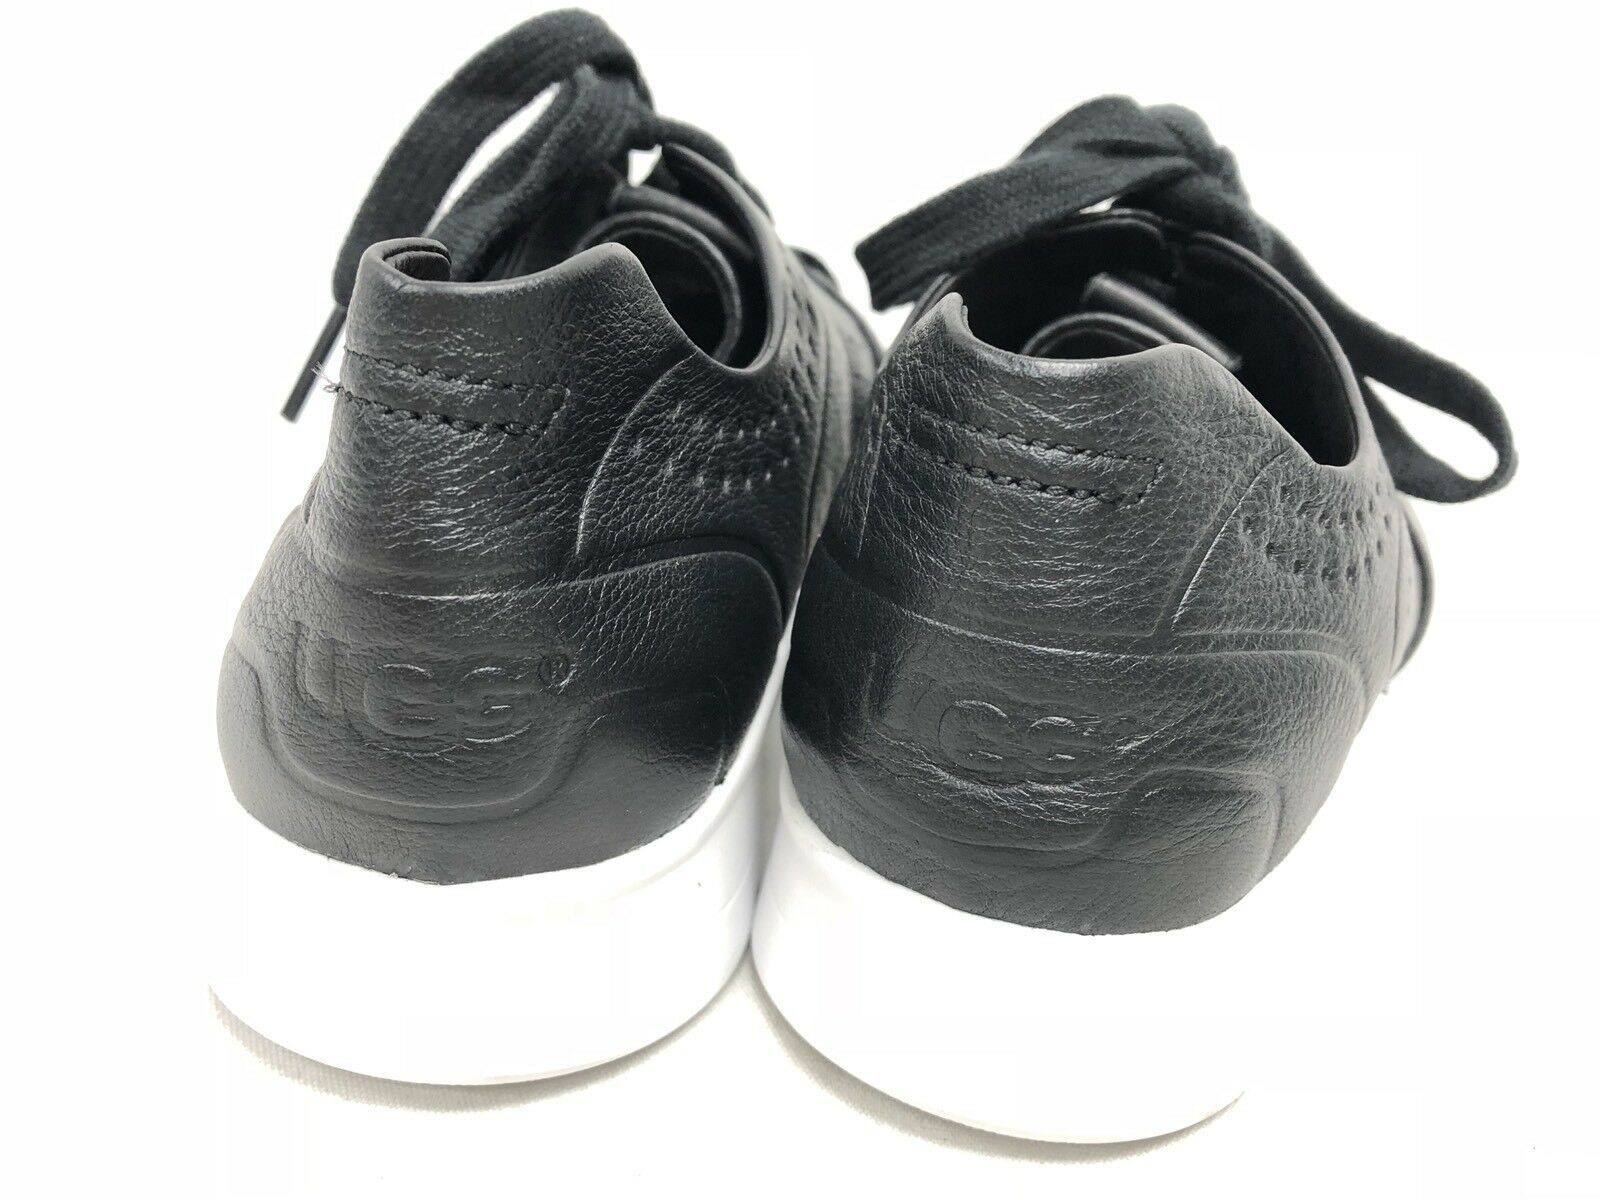 UGG Australia Tye Lace Up Leather Perforated Fashion Sneakers 1092577 Black 8